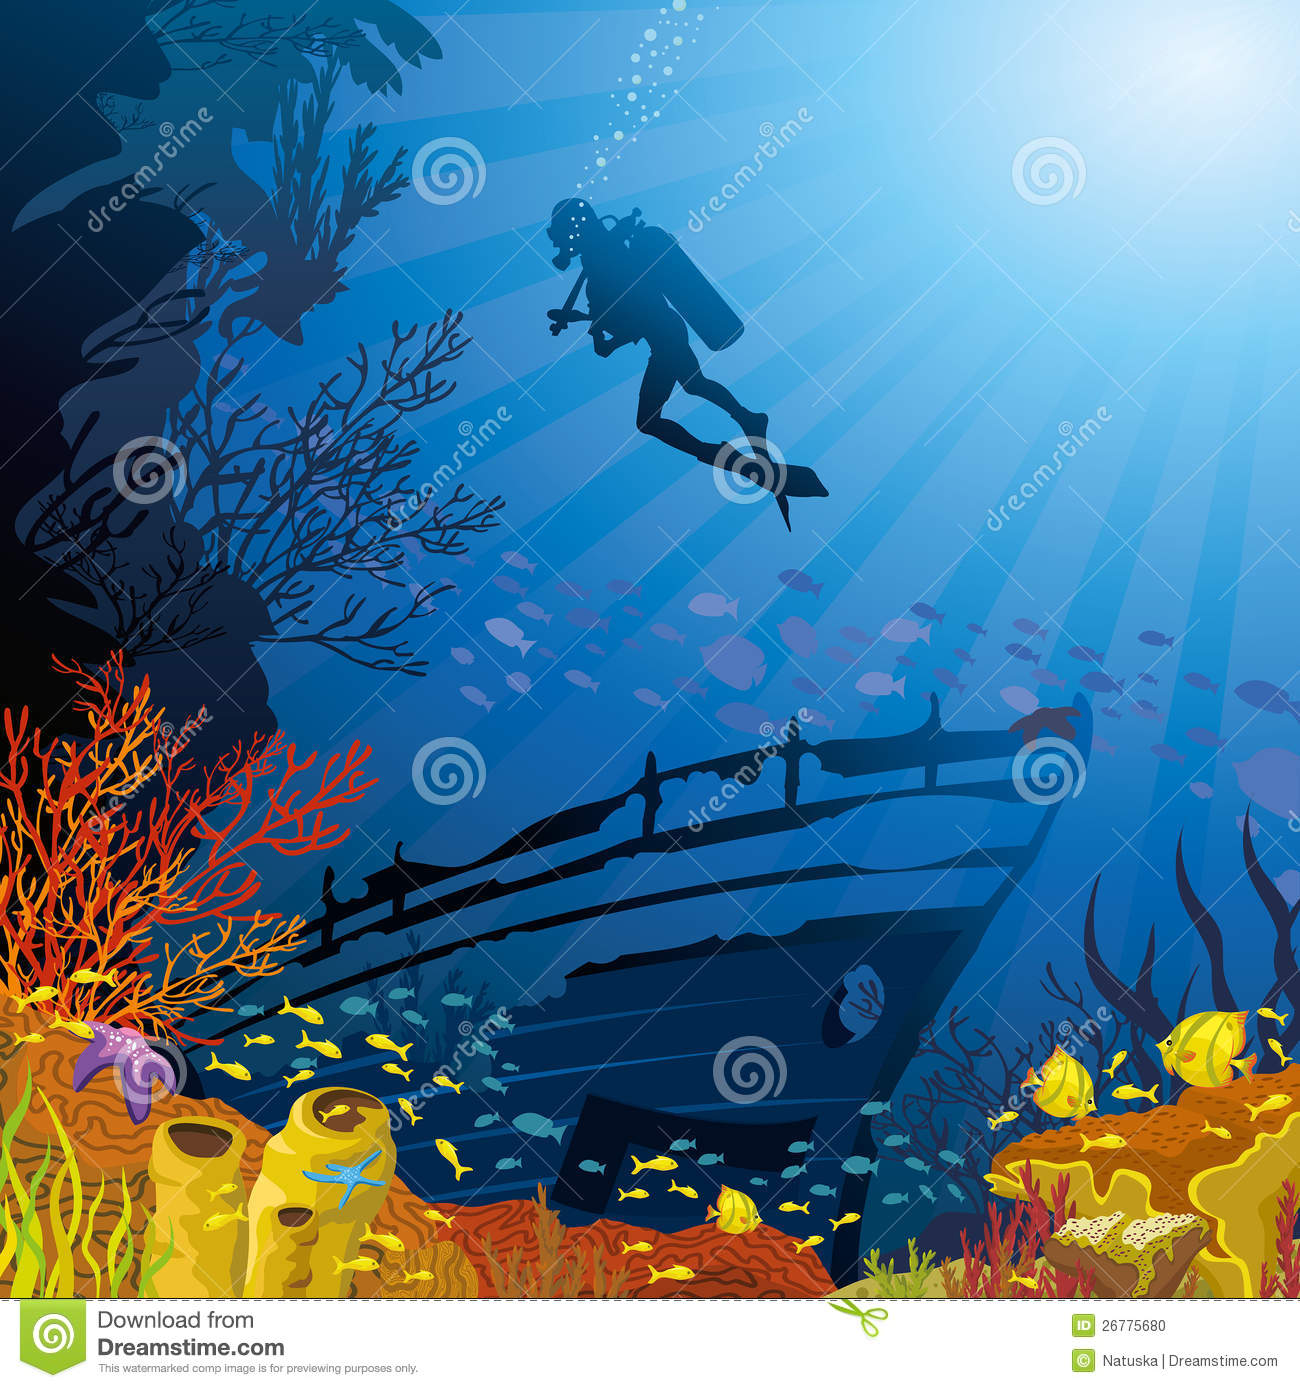 Coral Reef Background: Colored Coral Reef With Fish And Diver Stock Illustration